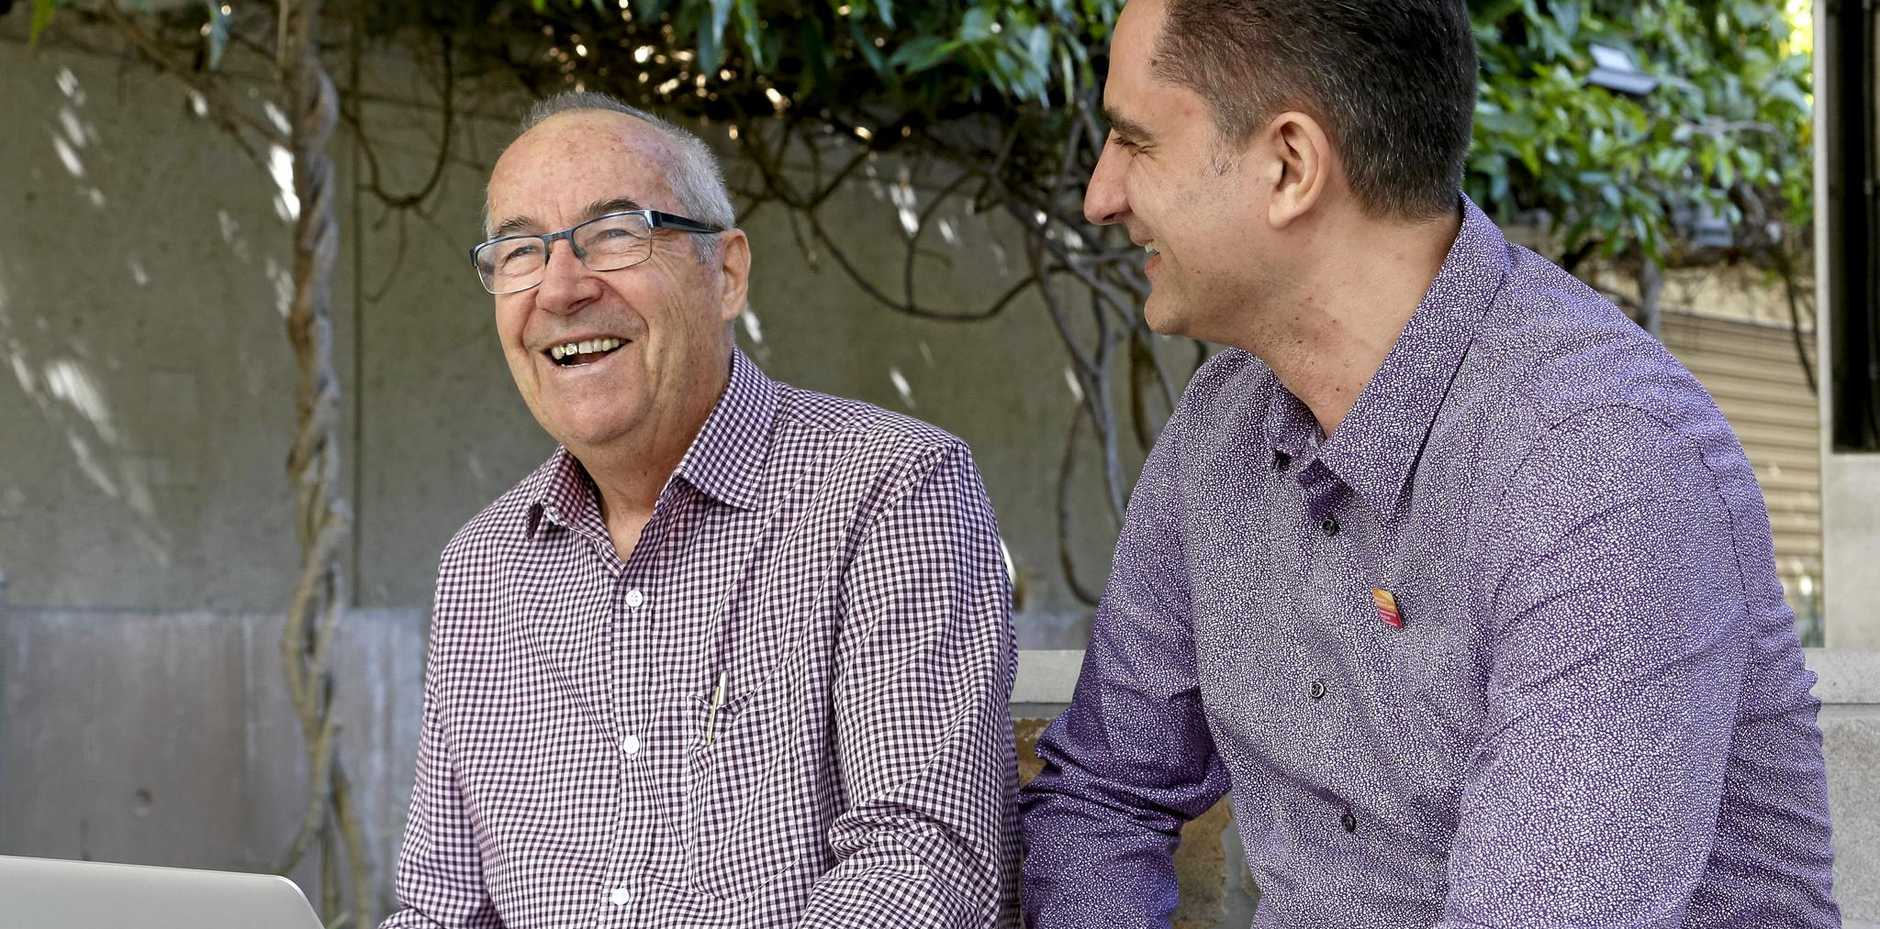 SAVVY SENIORS: It's time to get connected with the help of the Telstra Tech-Savvy Seniors program.